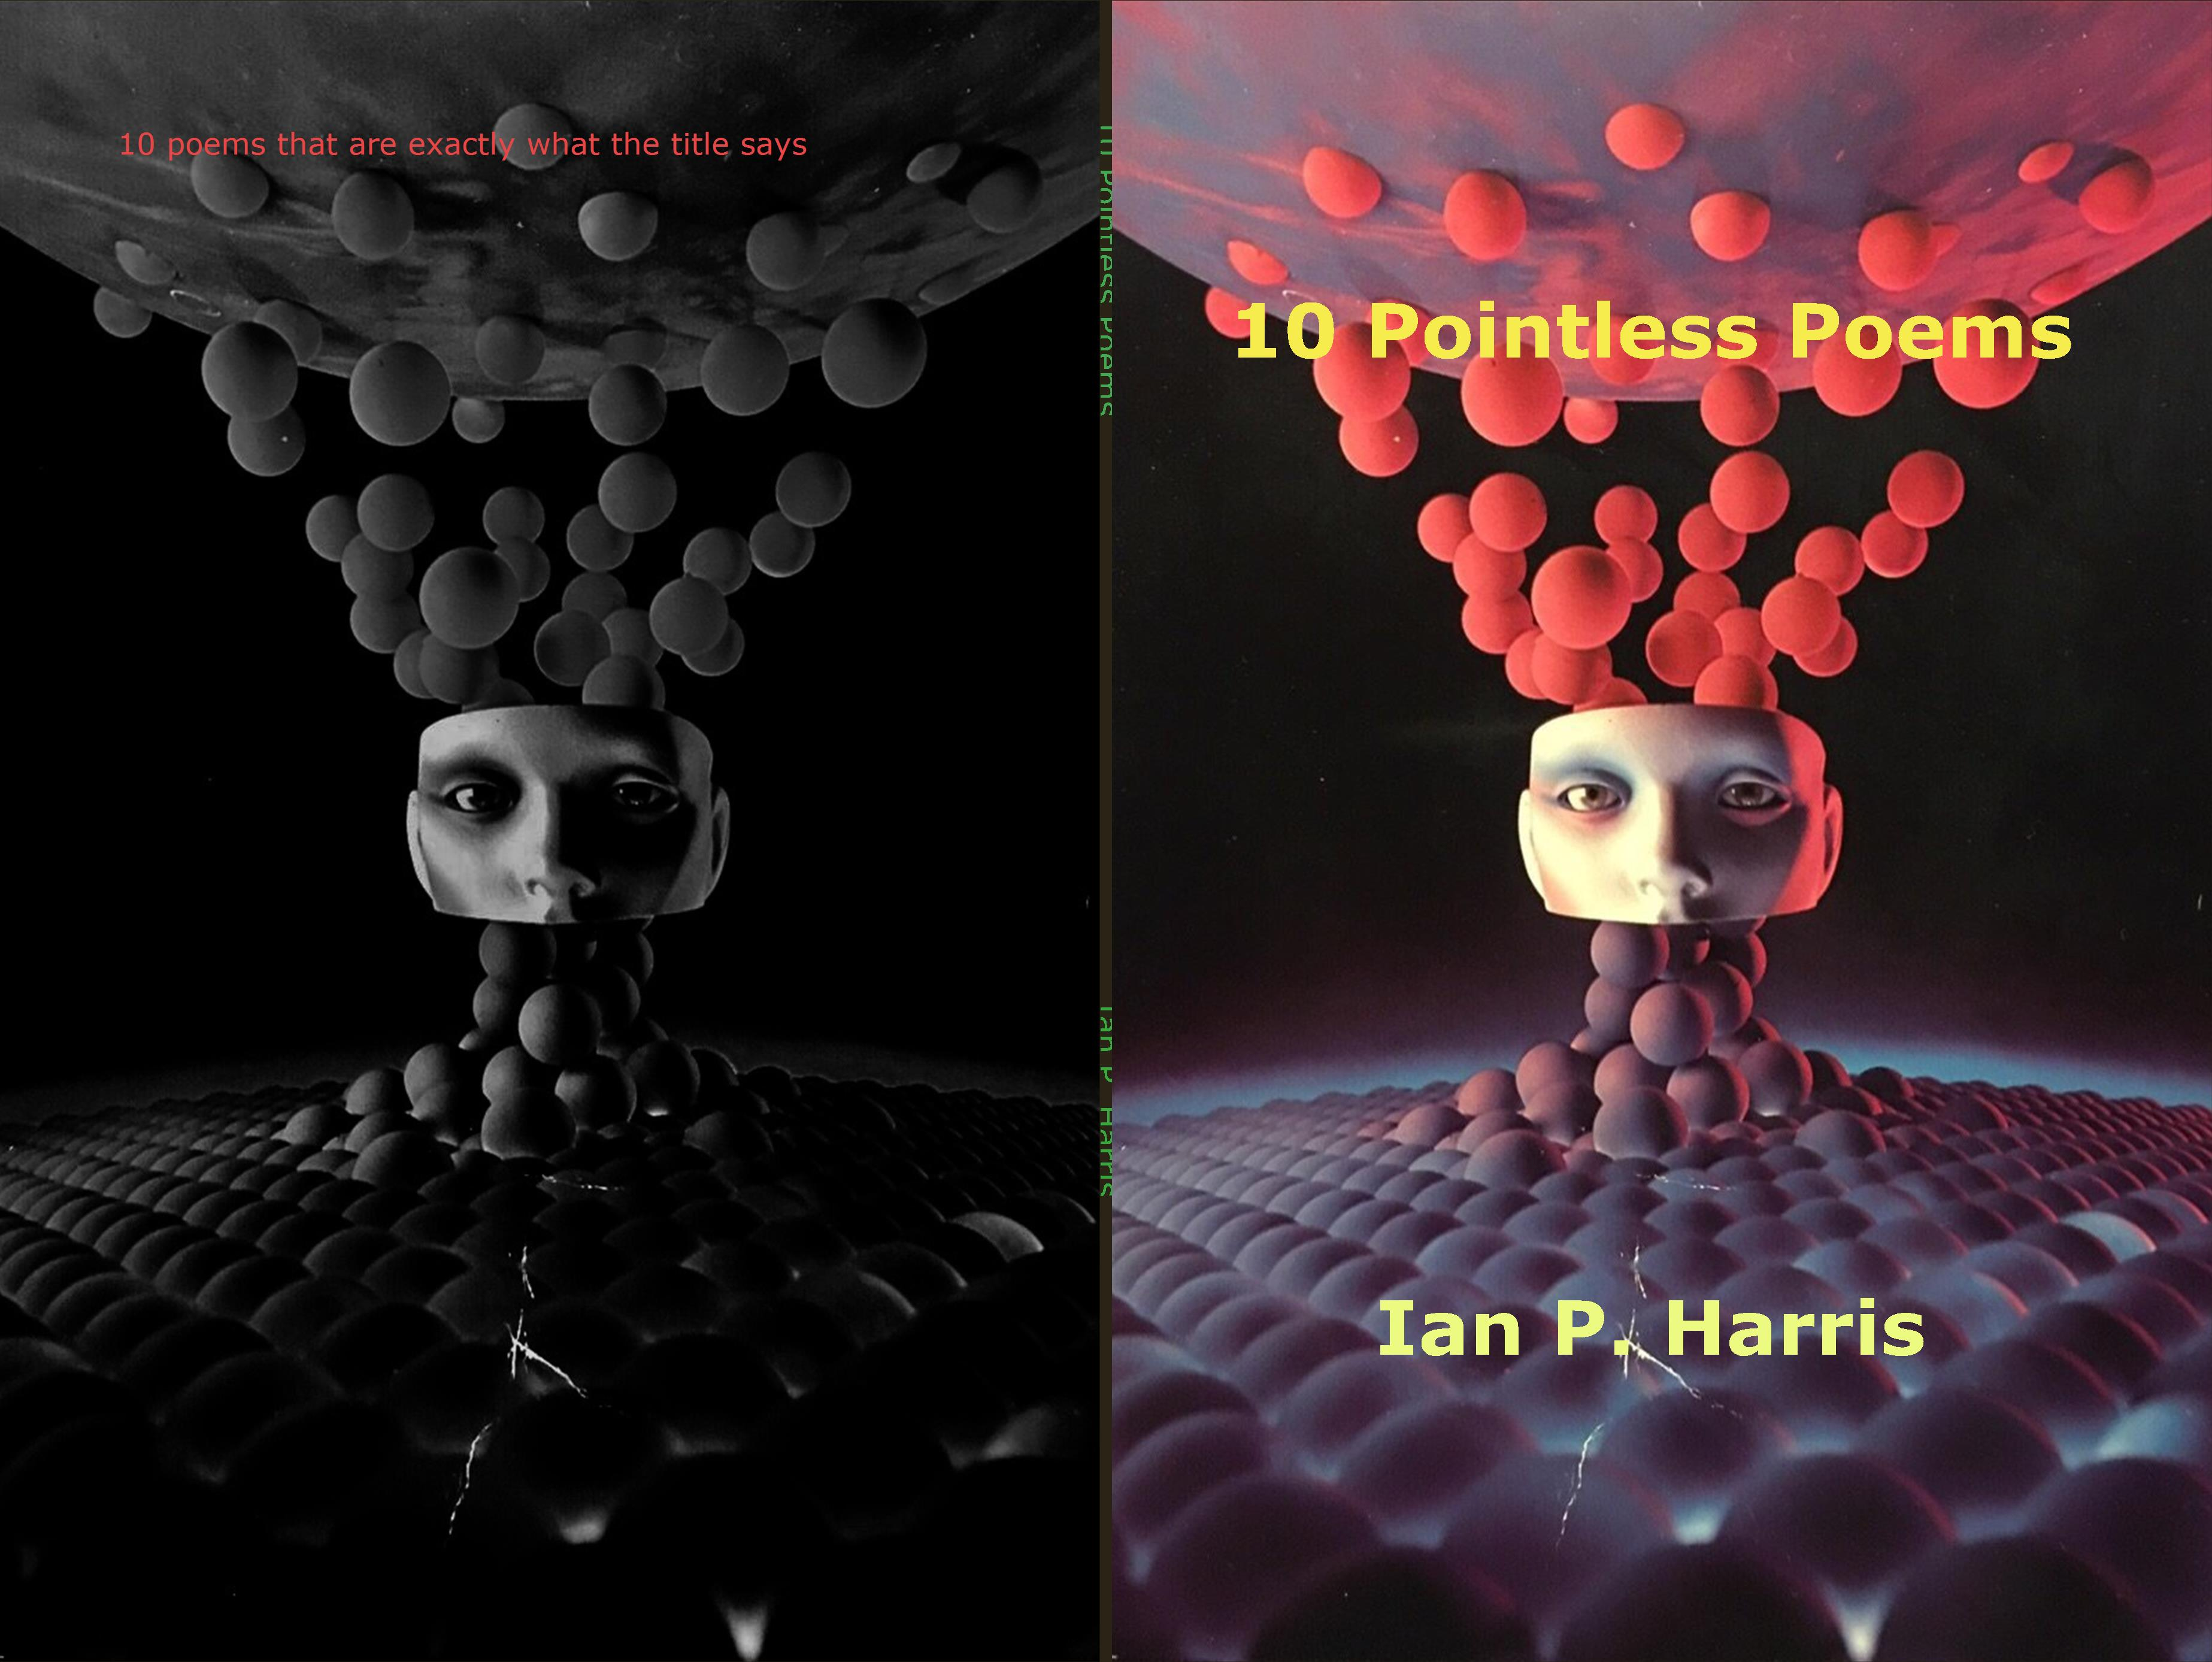 10 Pointless Poems cover image